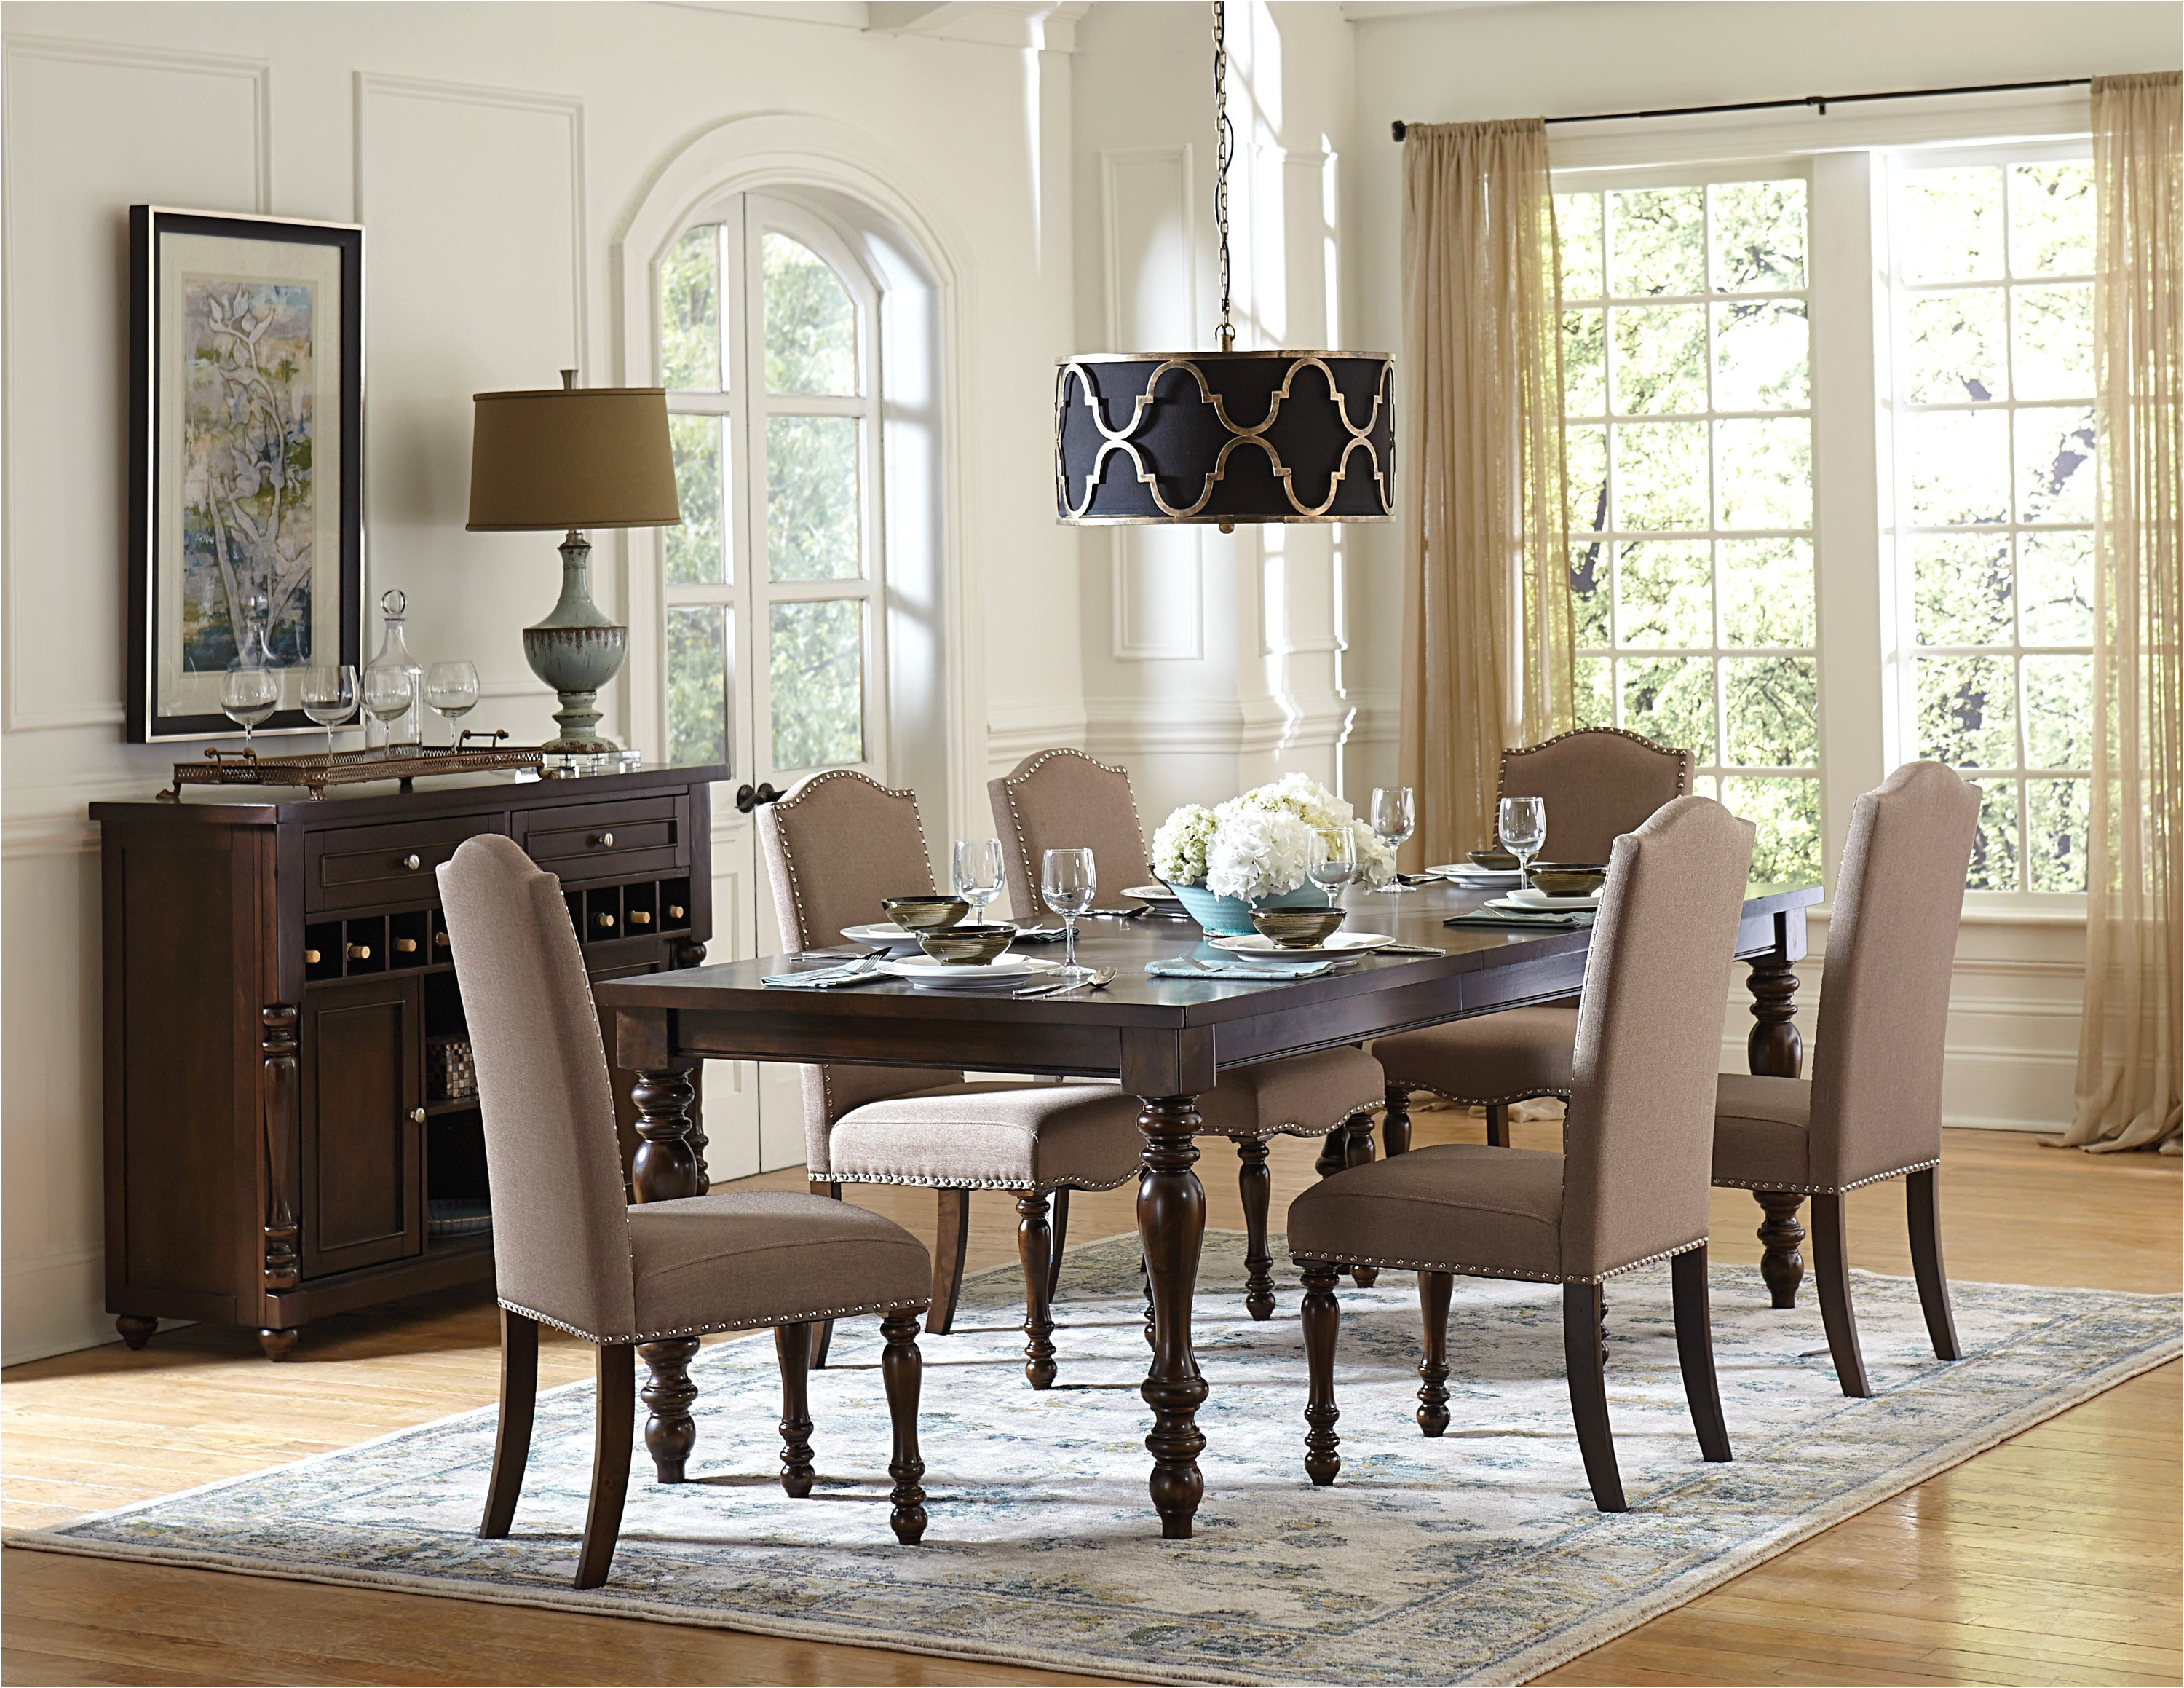 dining room furniture stores also luxury living room traditional rh nauterre com dining room furniture stores in toronto dining room furniture stores